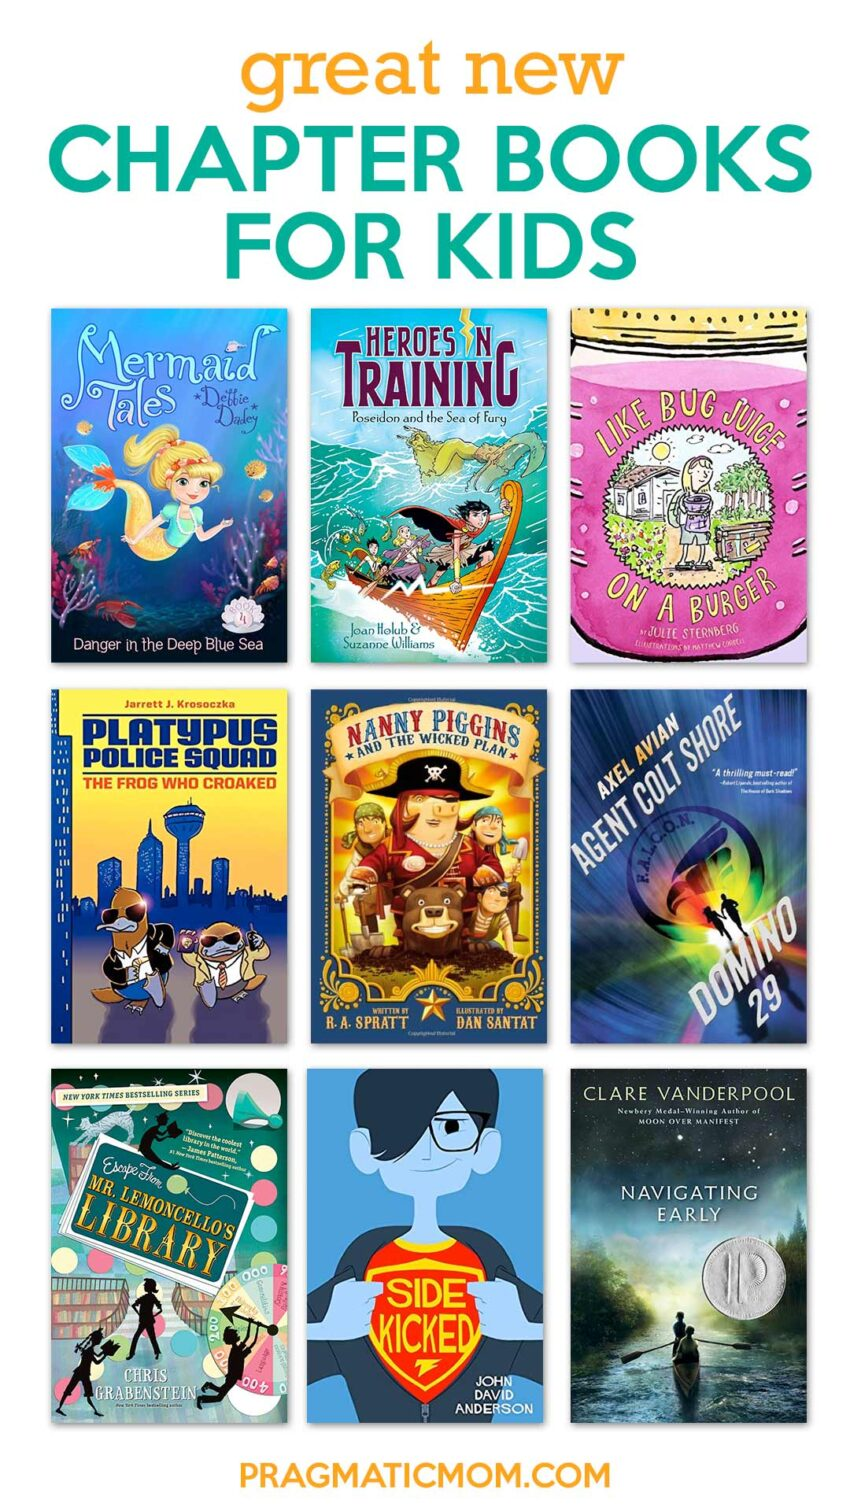 Great New Chapter Books for Kids